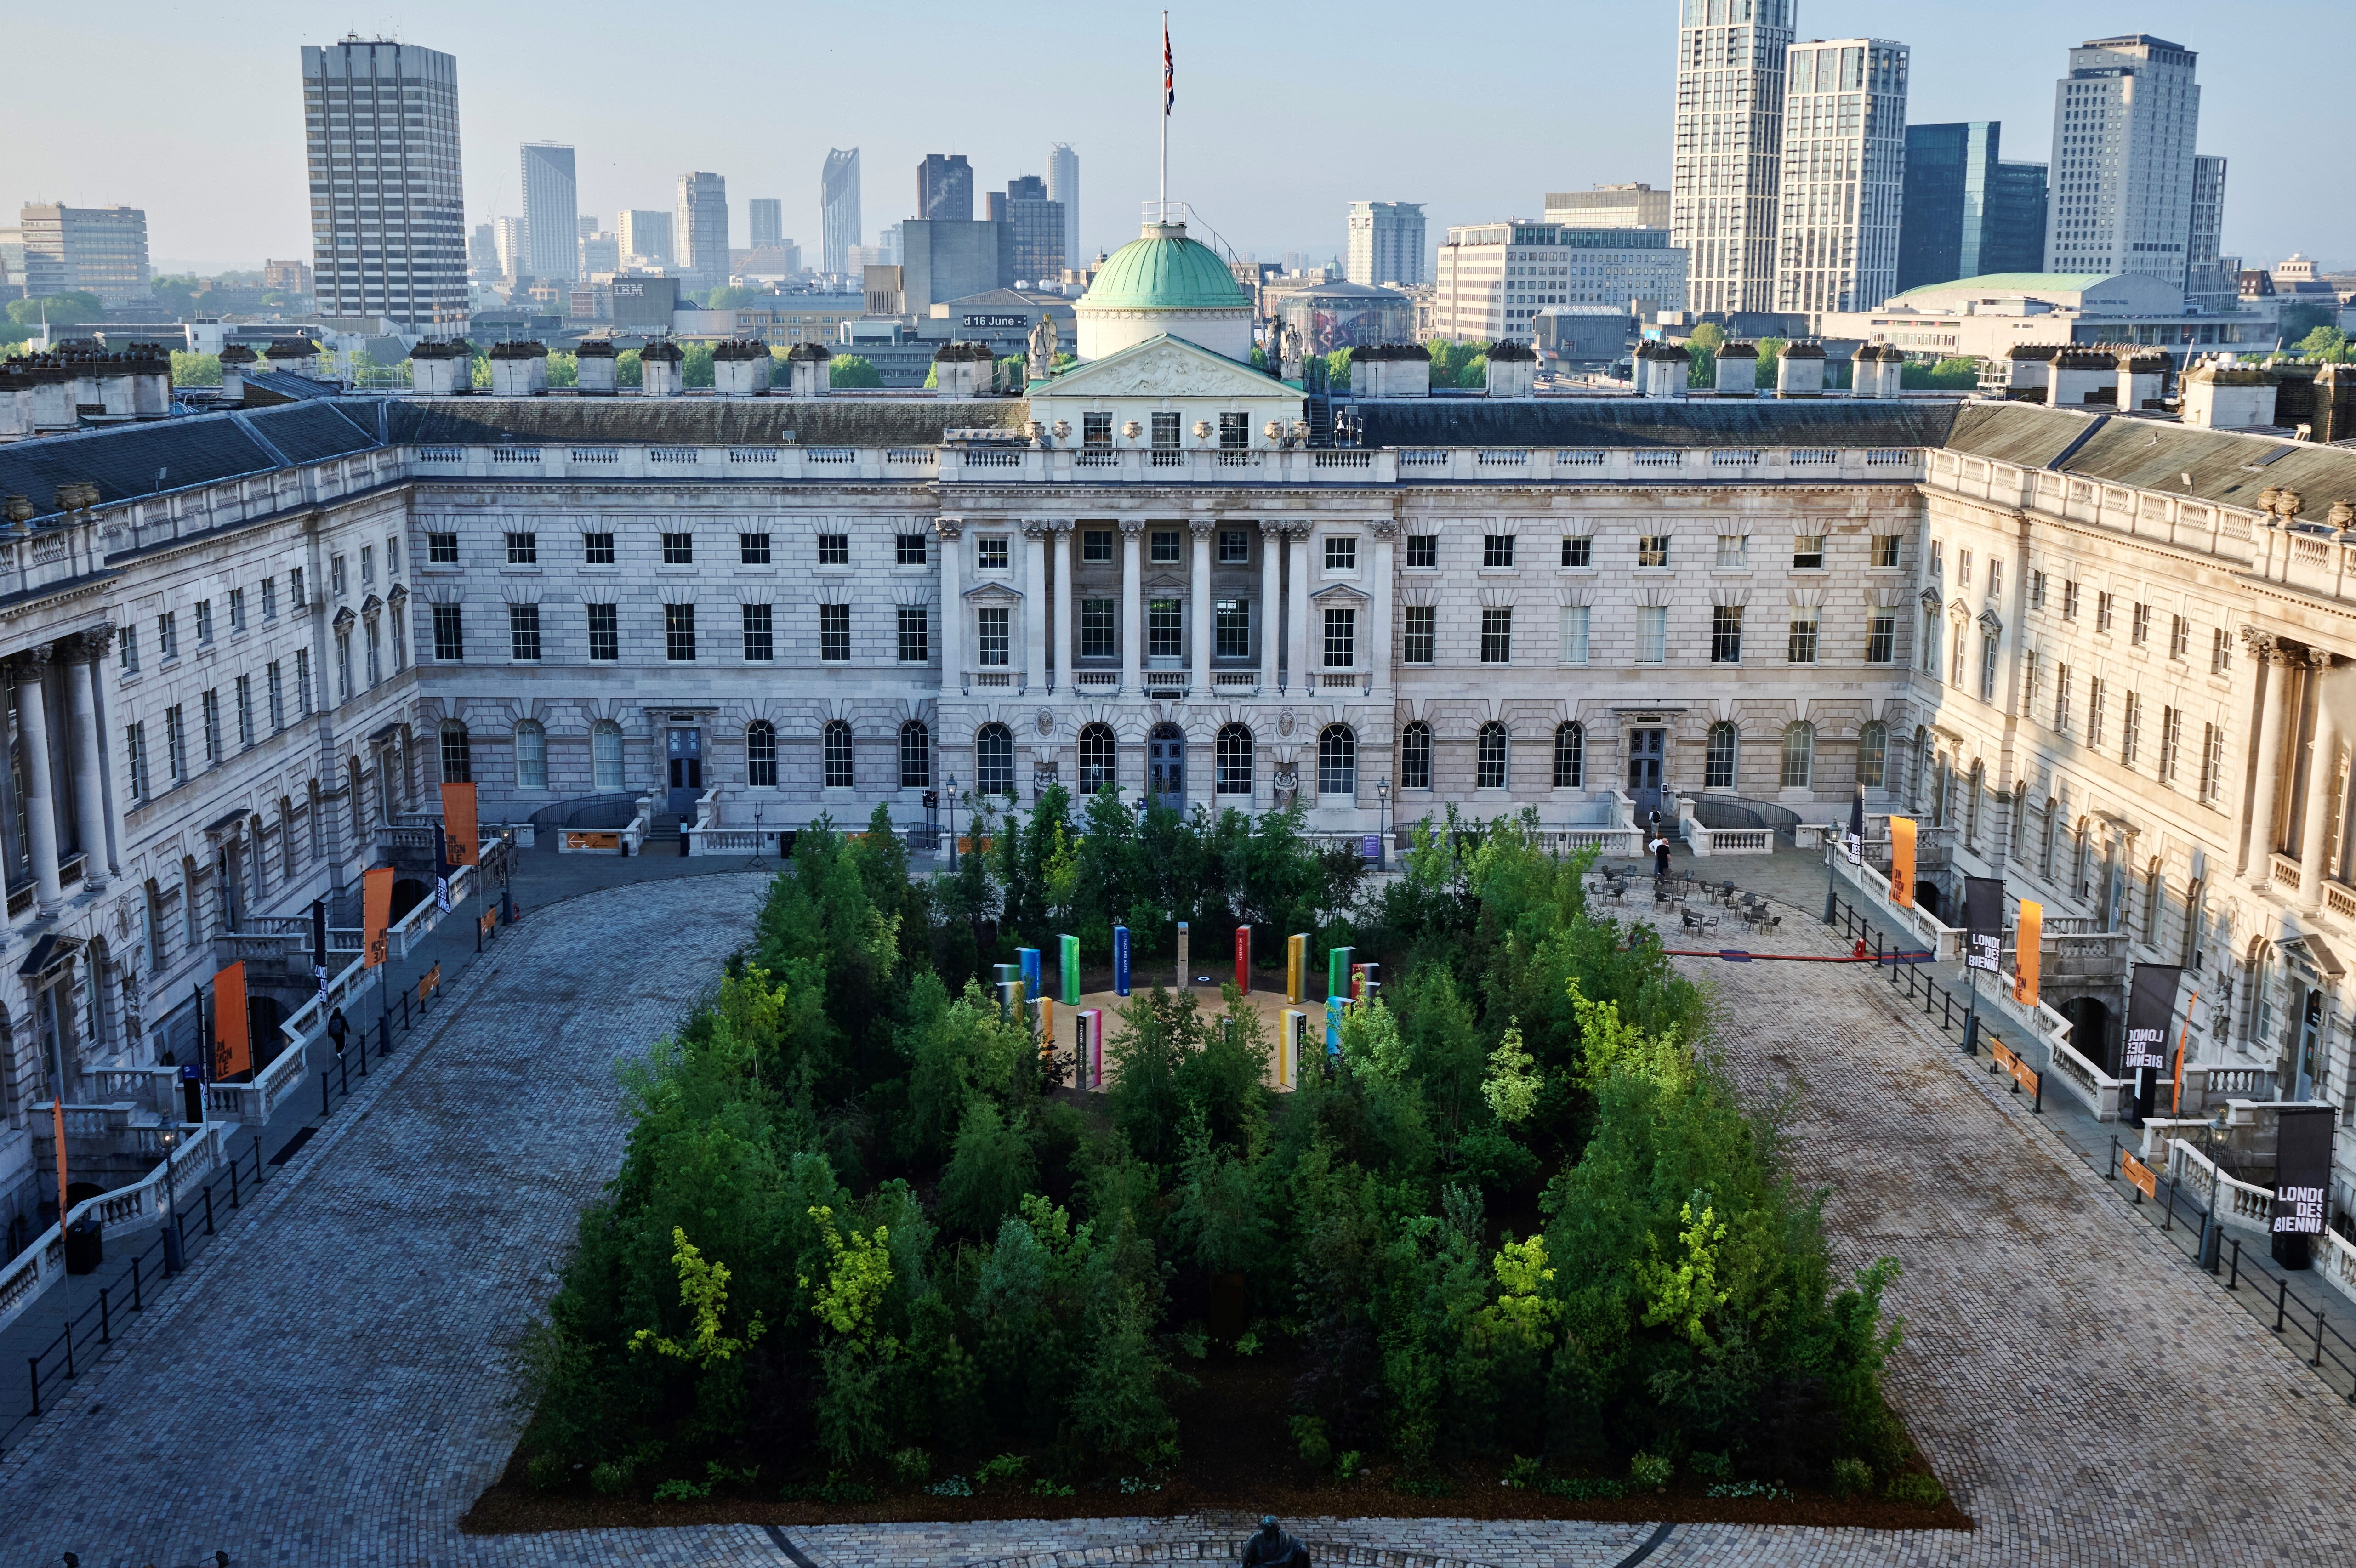 The Forest for Change at the London Design Biennale 2021